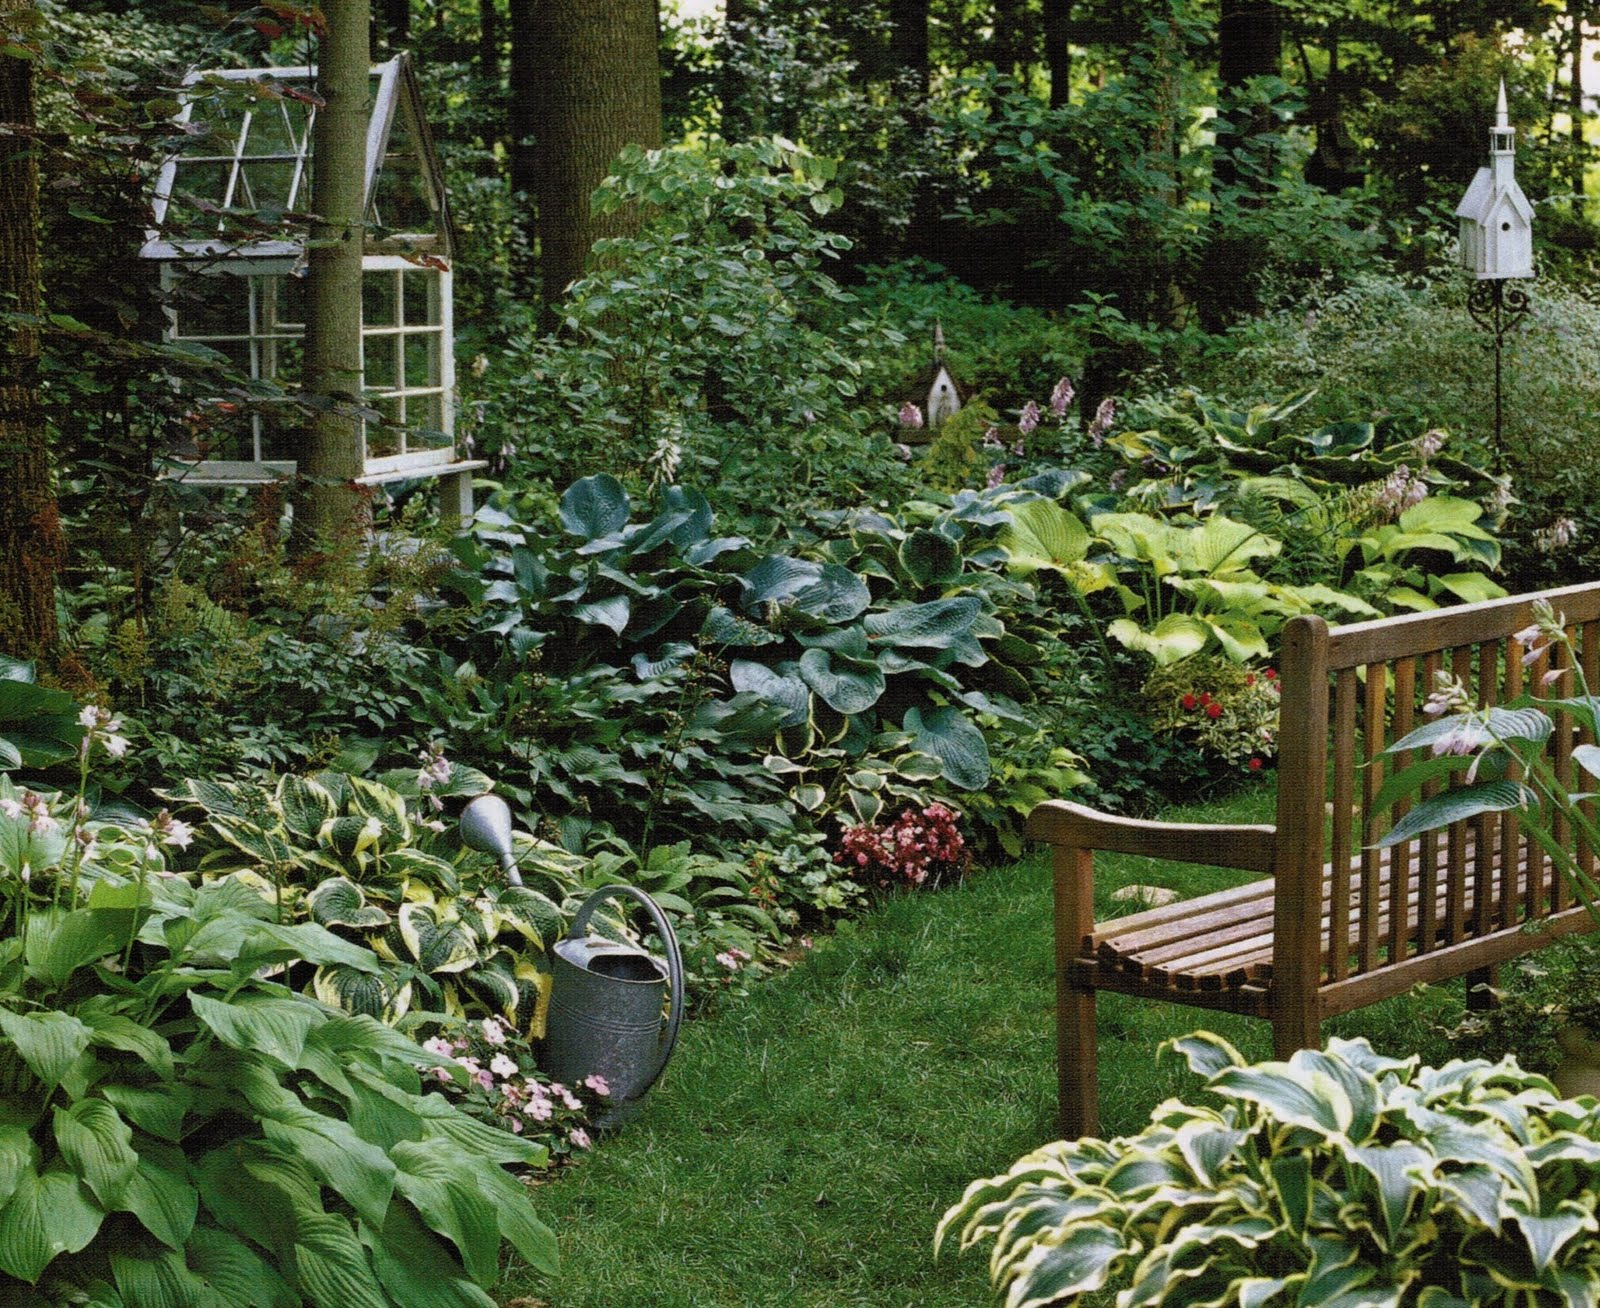 Maison Decor: A petite garden conservatory made out of old